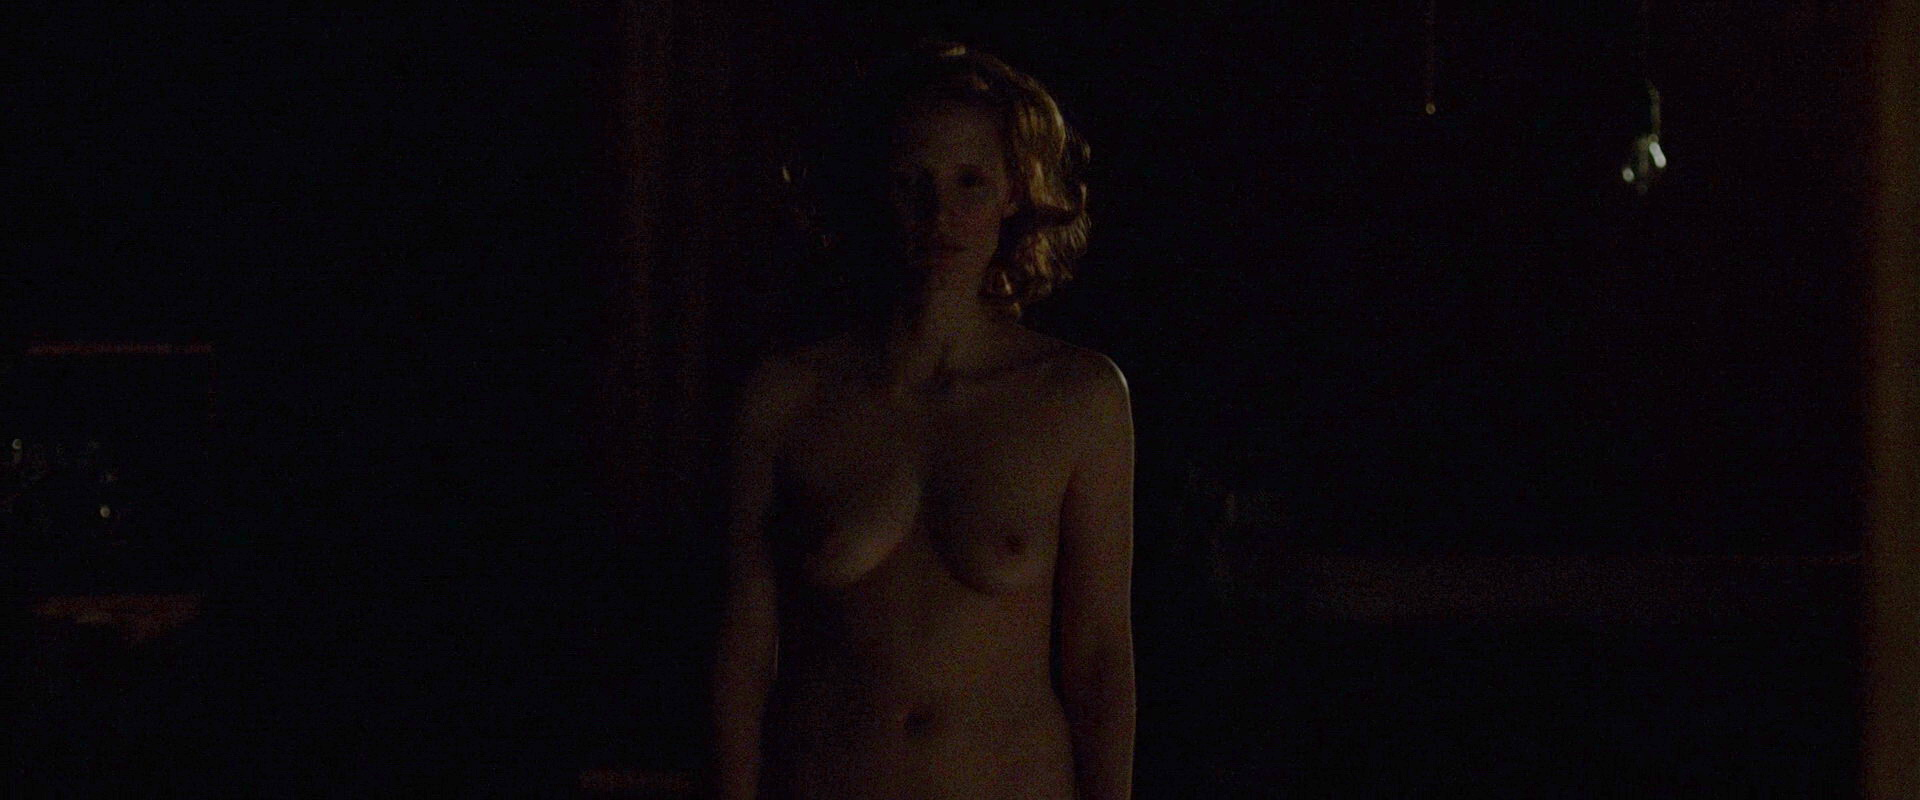 Lawless jessica chastain nude